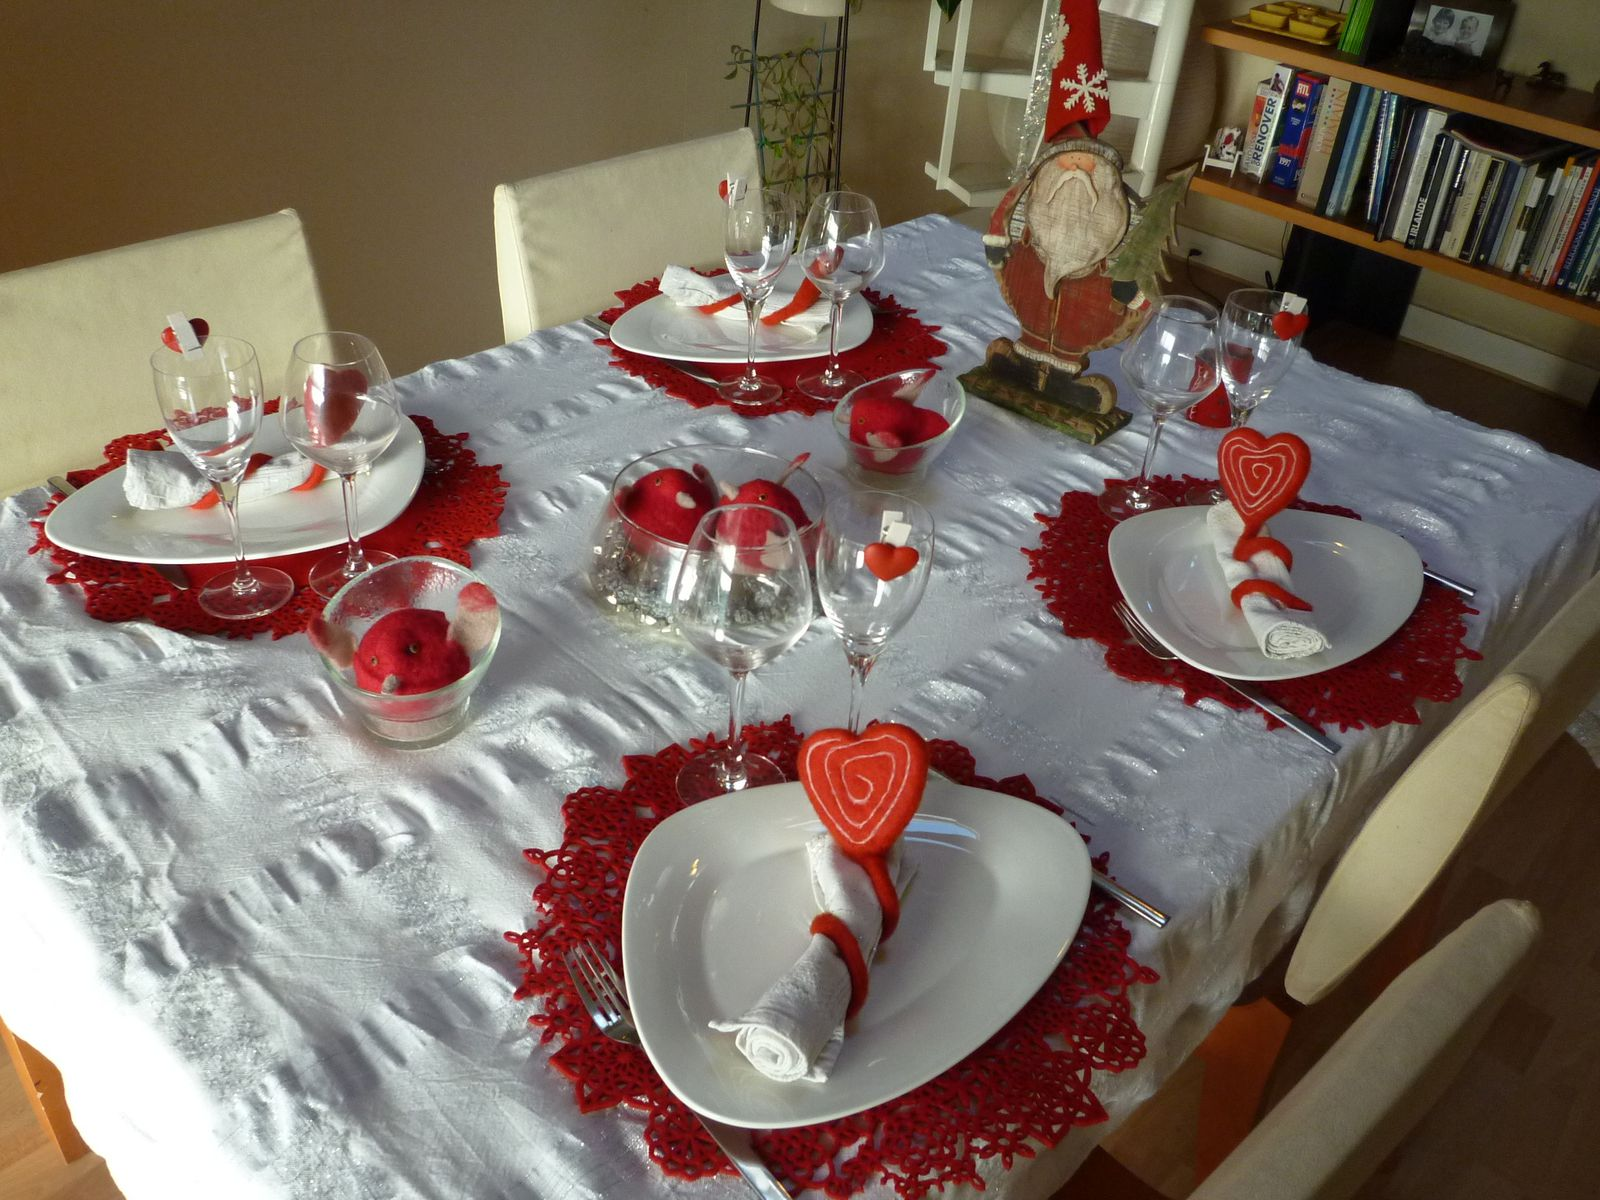 Comment decorer la table de cuisine - Decoration table de noel pas cher ...